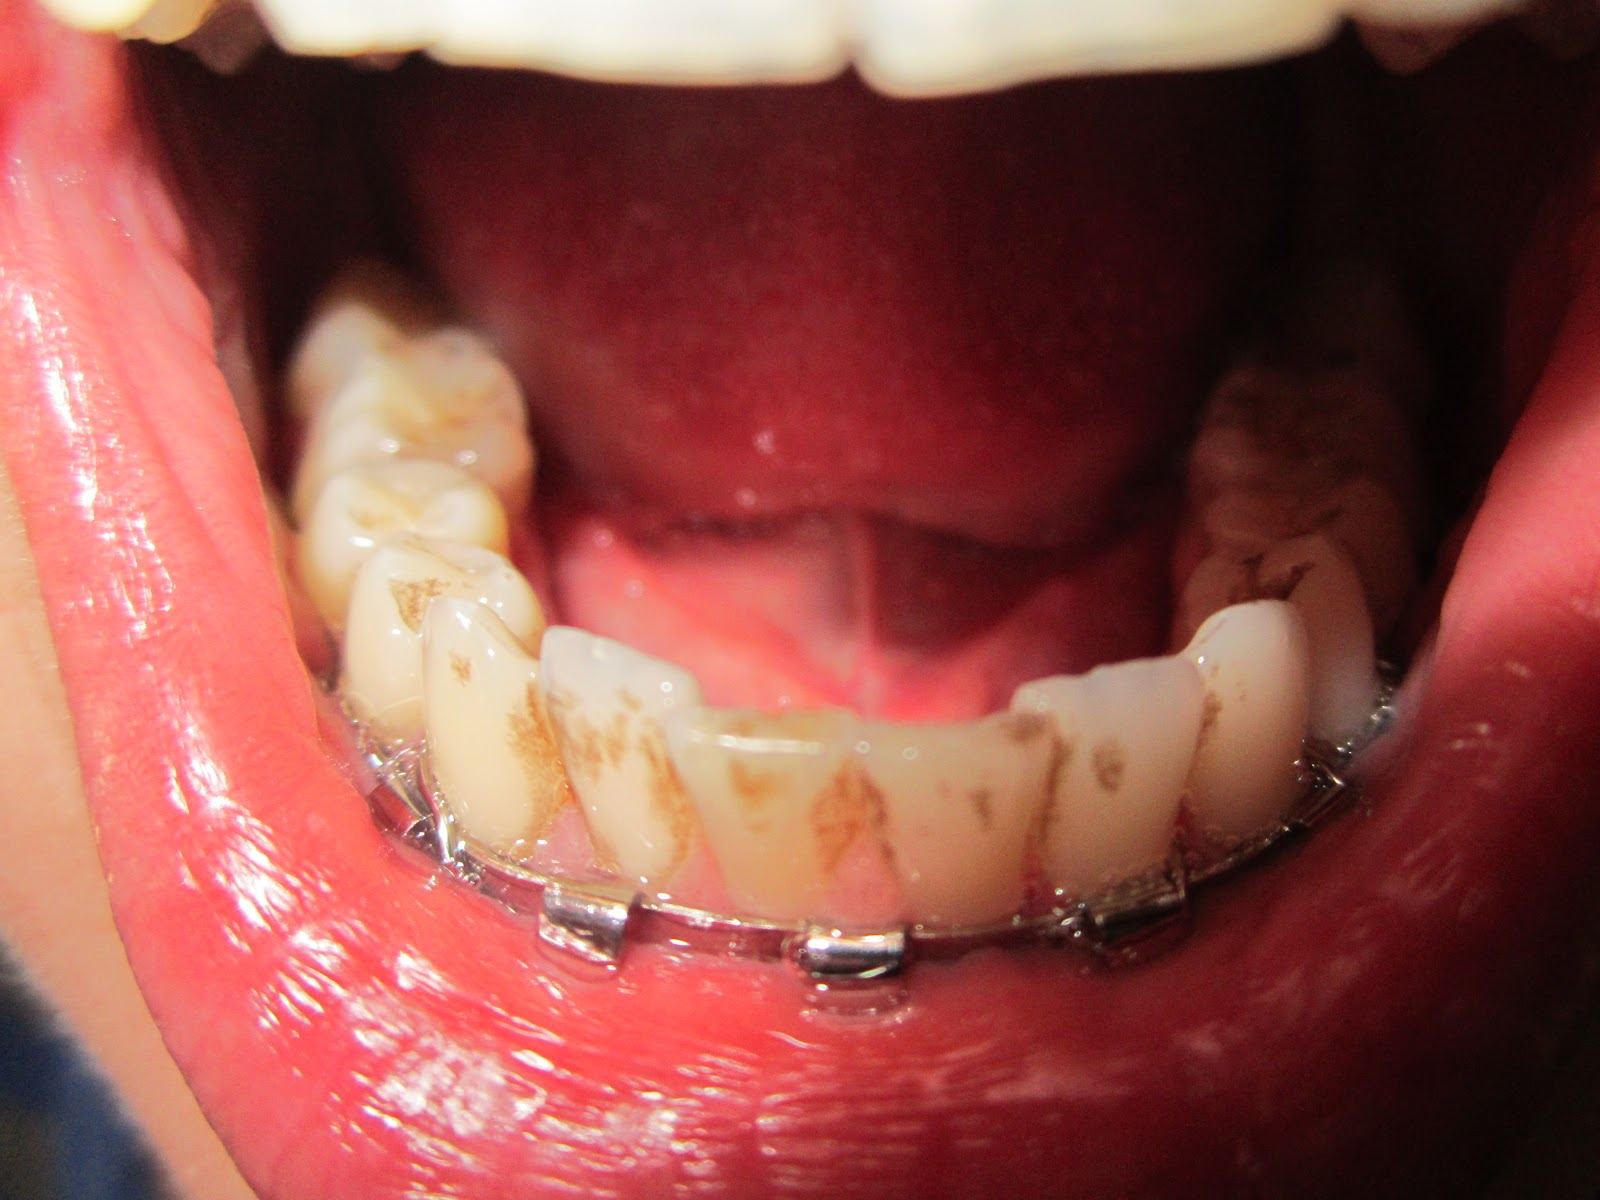 Kid on the Run: Through the Wire: Reflections on my Broken Jaw